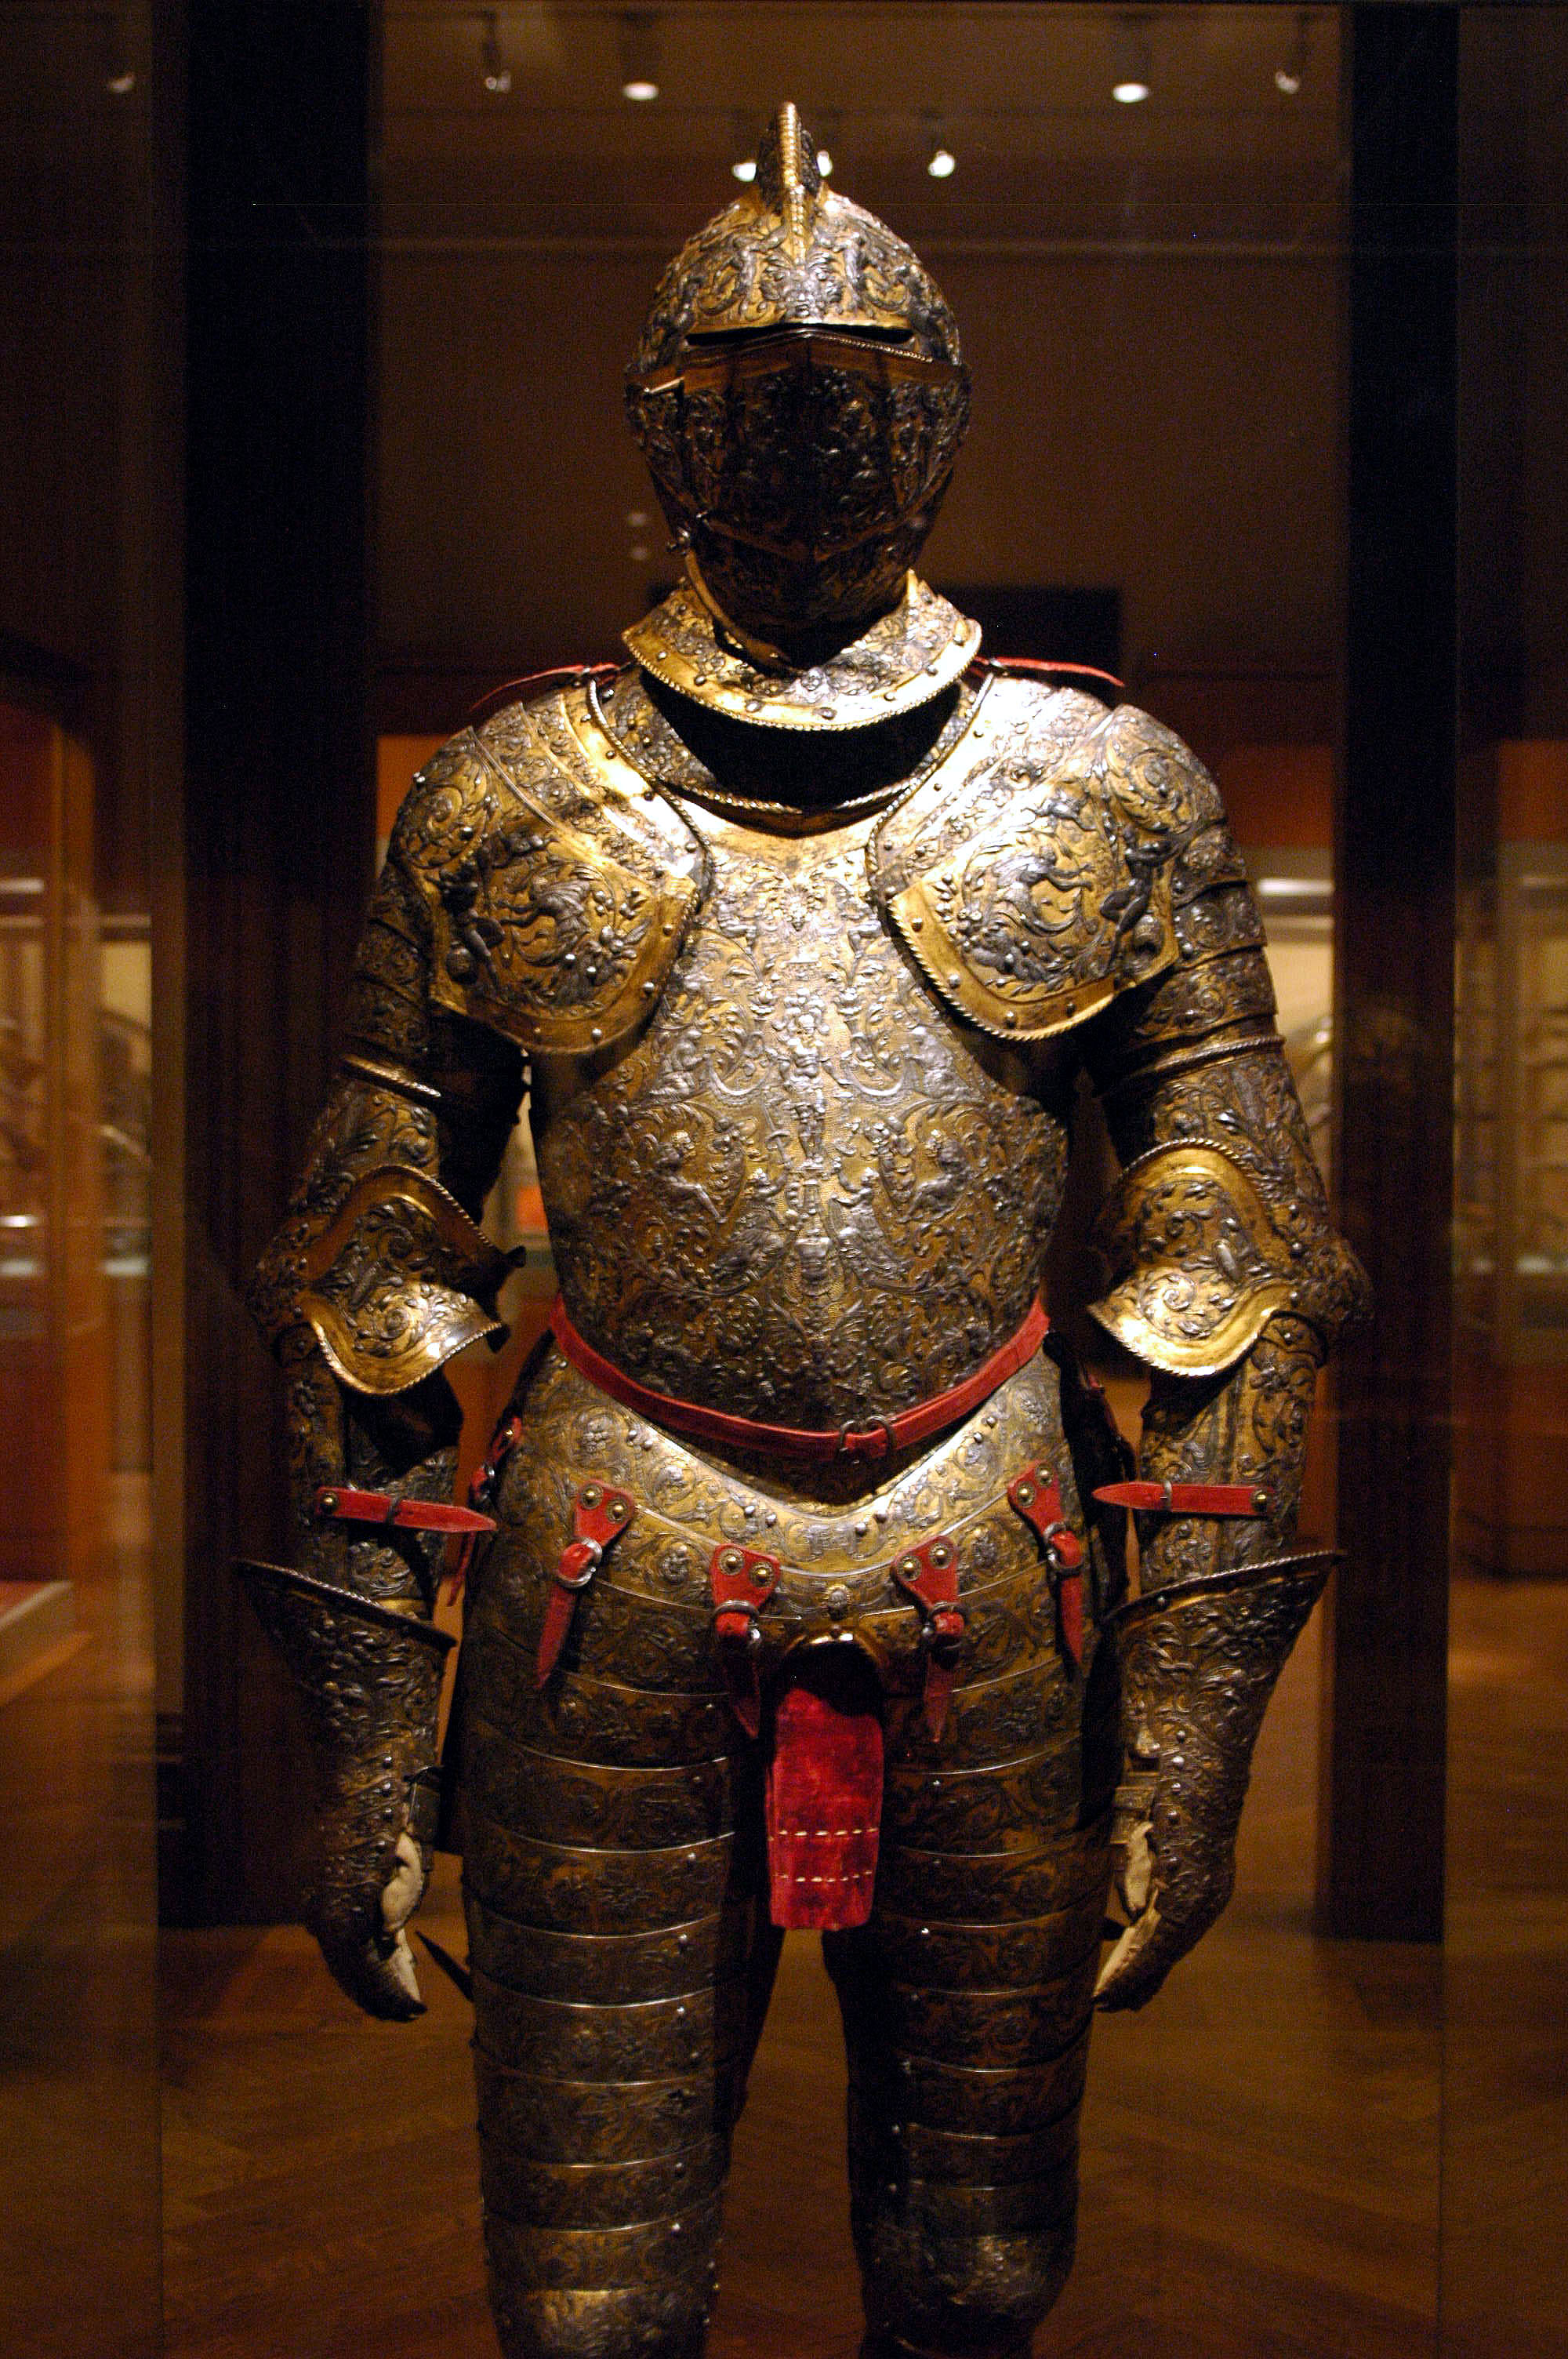 Cronologia Besalu En likewise Belt course moreover File wla metmuseum armor of henry ii of france together with Modern Fencing Sabre besides Ransomes Crossing I Love A Man In Uniform. on 18th century belt